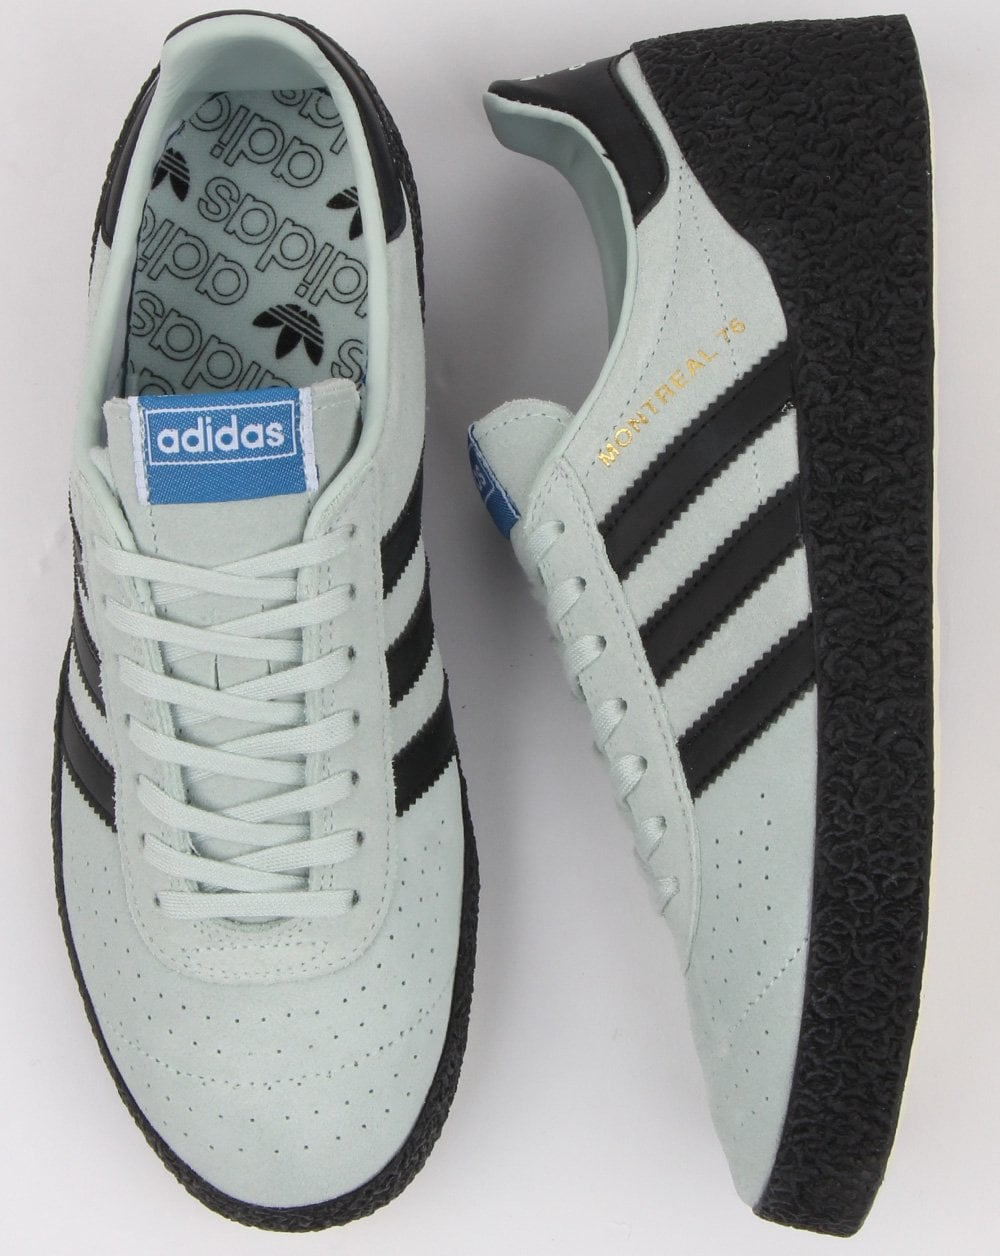 Adidas Montreal 76 Trainers Mint Green black 558bc203ee8e